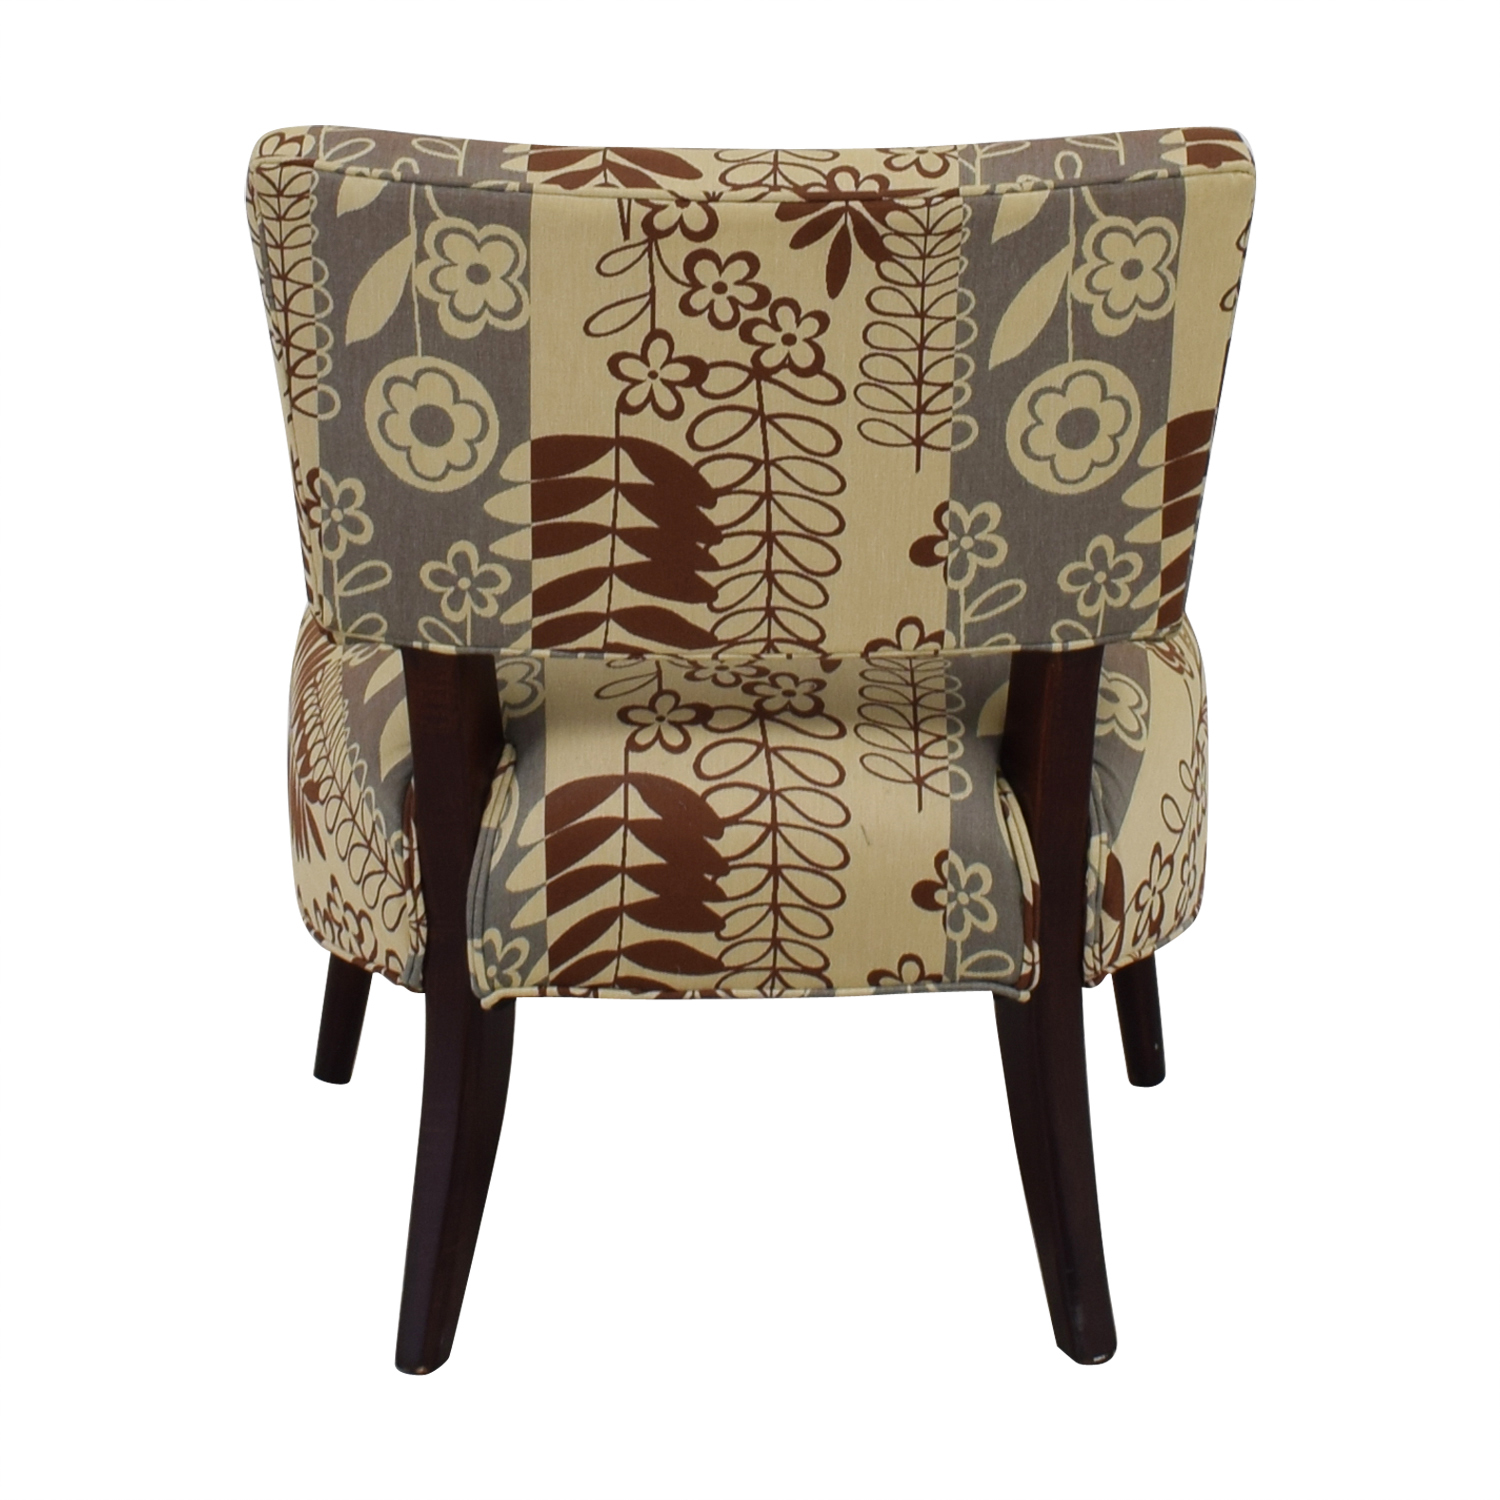 buy Beige Multi-Colored Floral Upholstered Chair